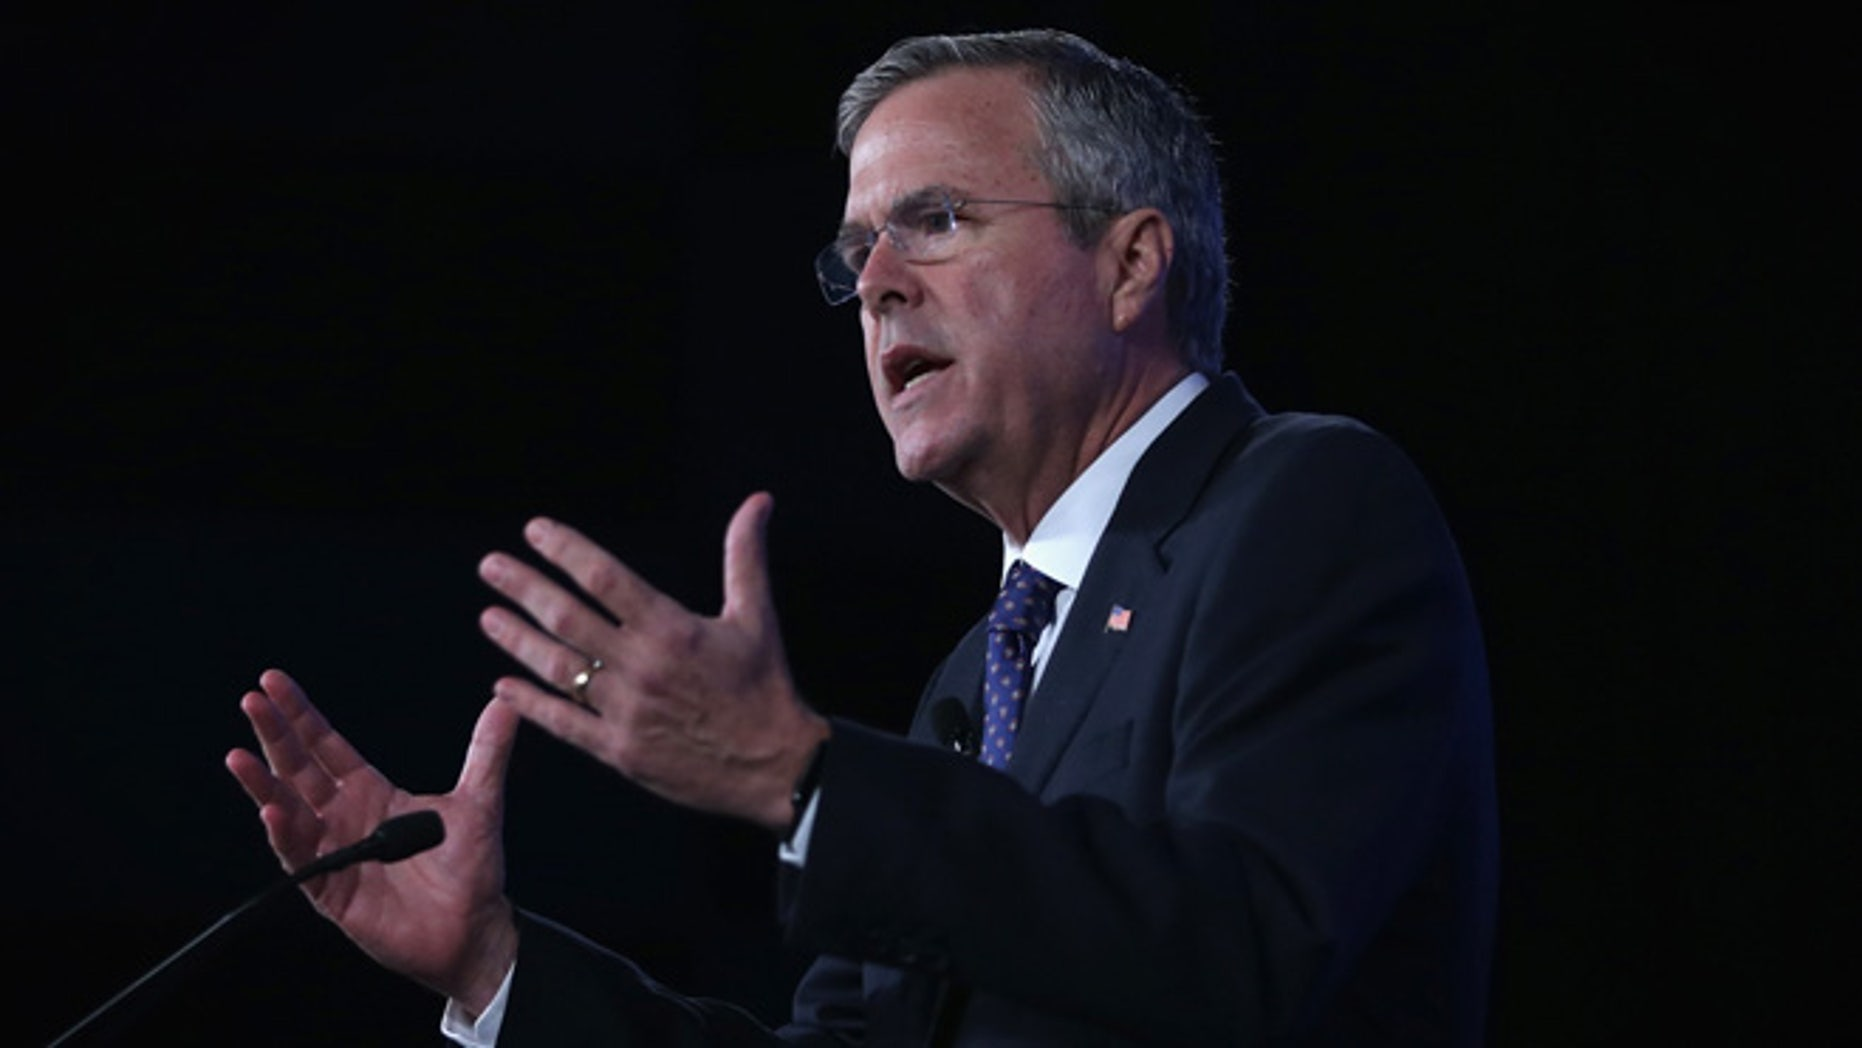 OKLAHOMA CITY, OK - MAY 22:  Republican presidential hopeful and former Florida Governor Jeb Bush speaks during the 2015 Southern Republican Leadership Conference May 22, 2015 in Oklahoma City, Oklahoma. About a dozen possible presidential candidates will join the conference and lobby for supports from Republican voters.  (Photo by Alex Wong/Getty Images)